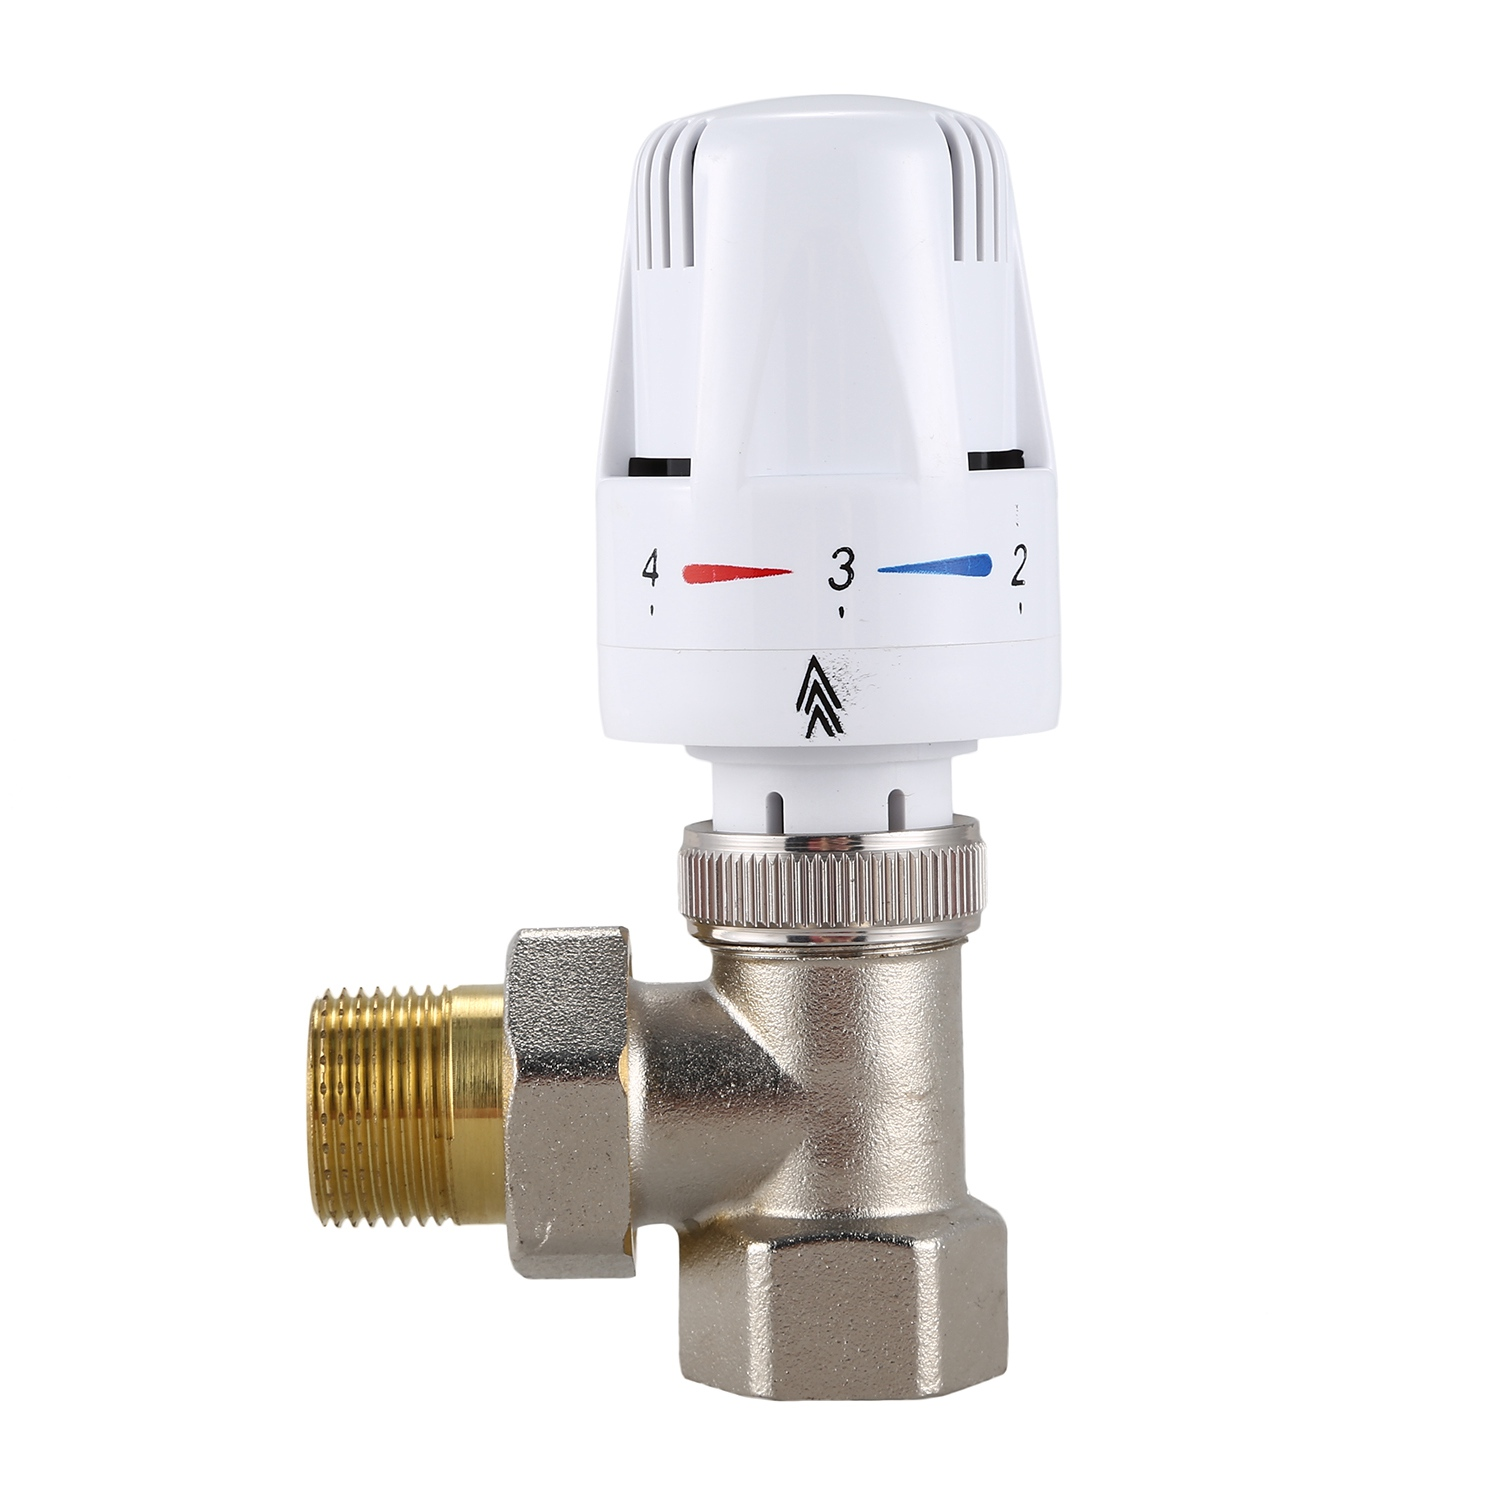 Hot DN20 Copper AutomaticTemperature Control Valve Angle Floor Heating And Heating Special Valve